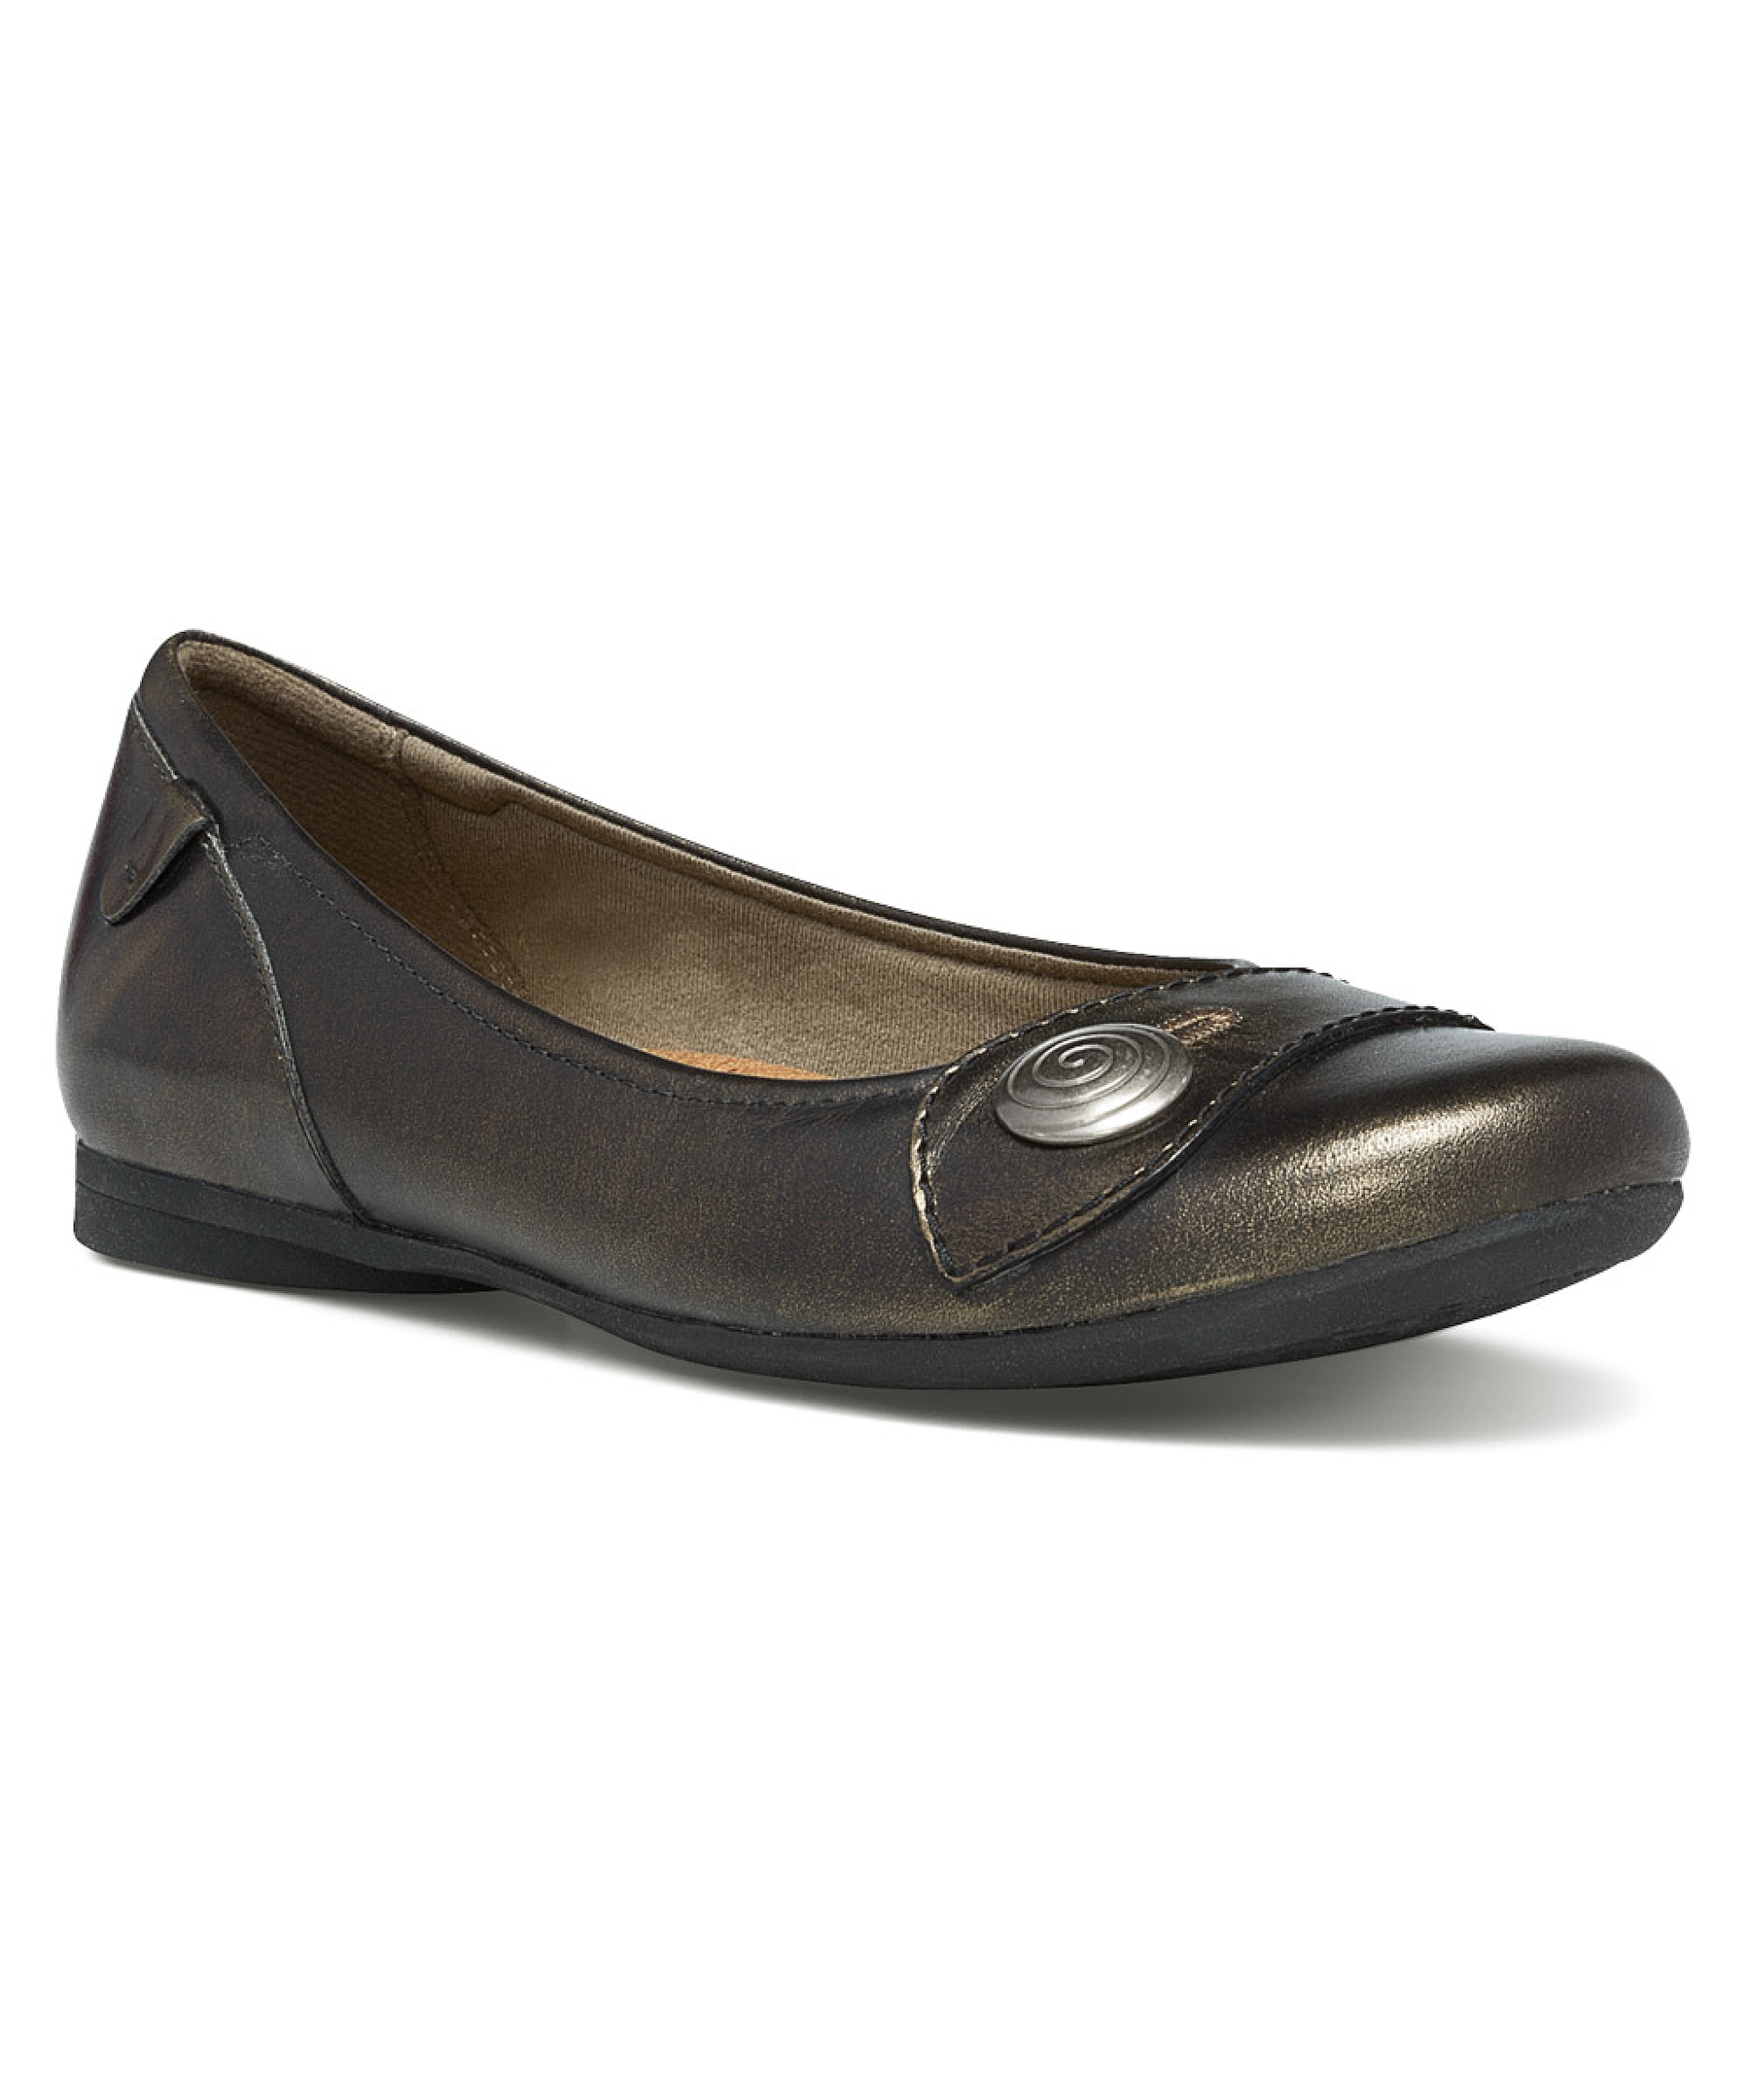 cobb black single women Shop comfortable and stylish women's flats from the cobb hill collection by rockport our women's flats and slip ons are available in a variety of colors rockport.